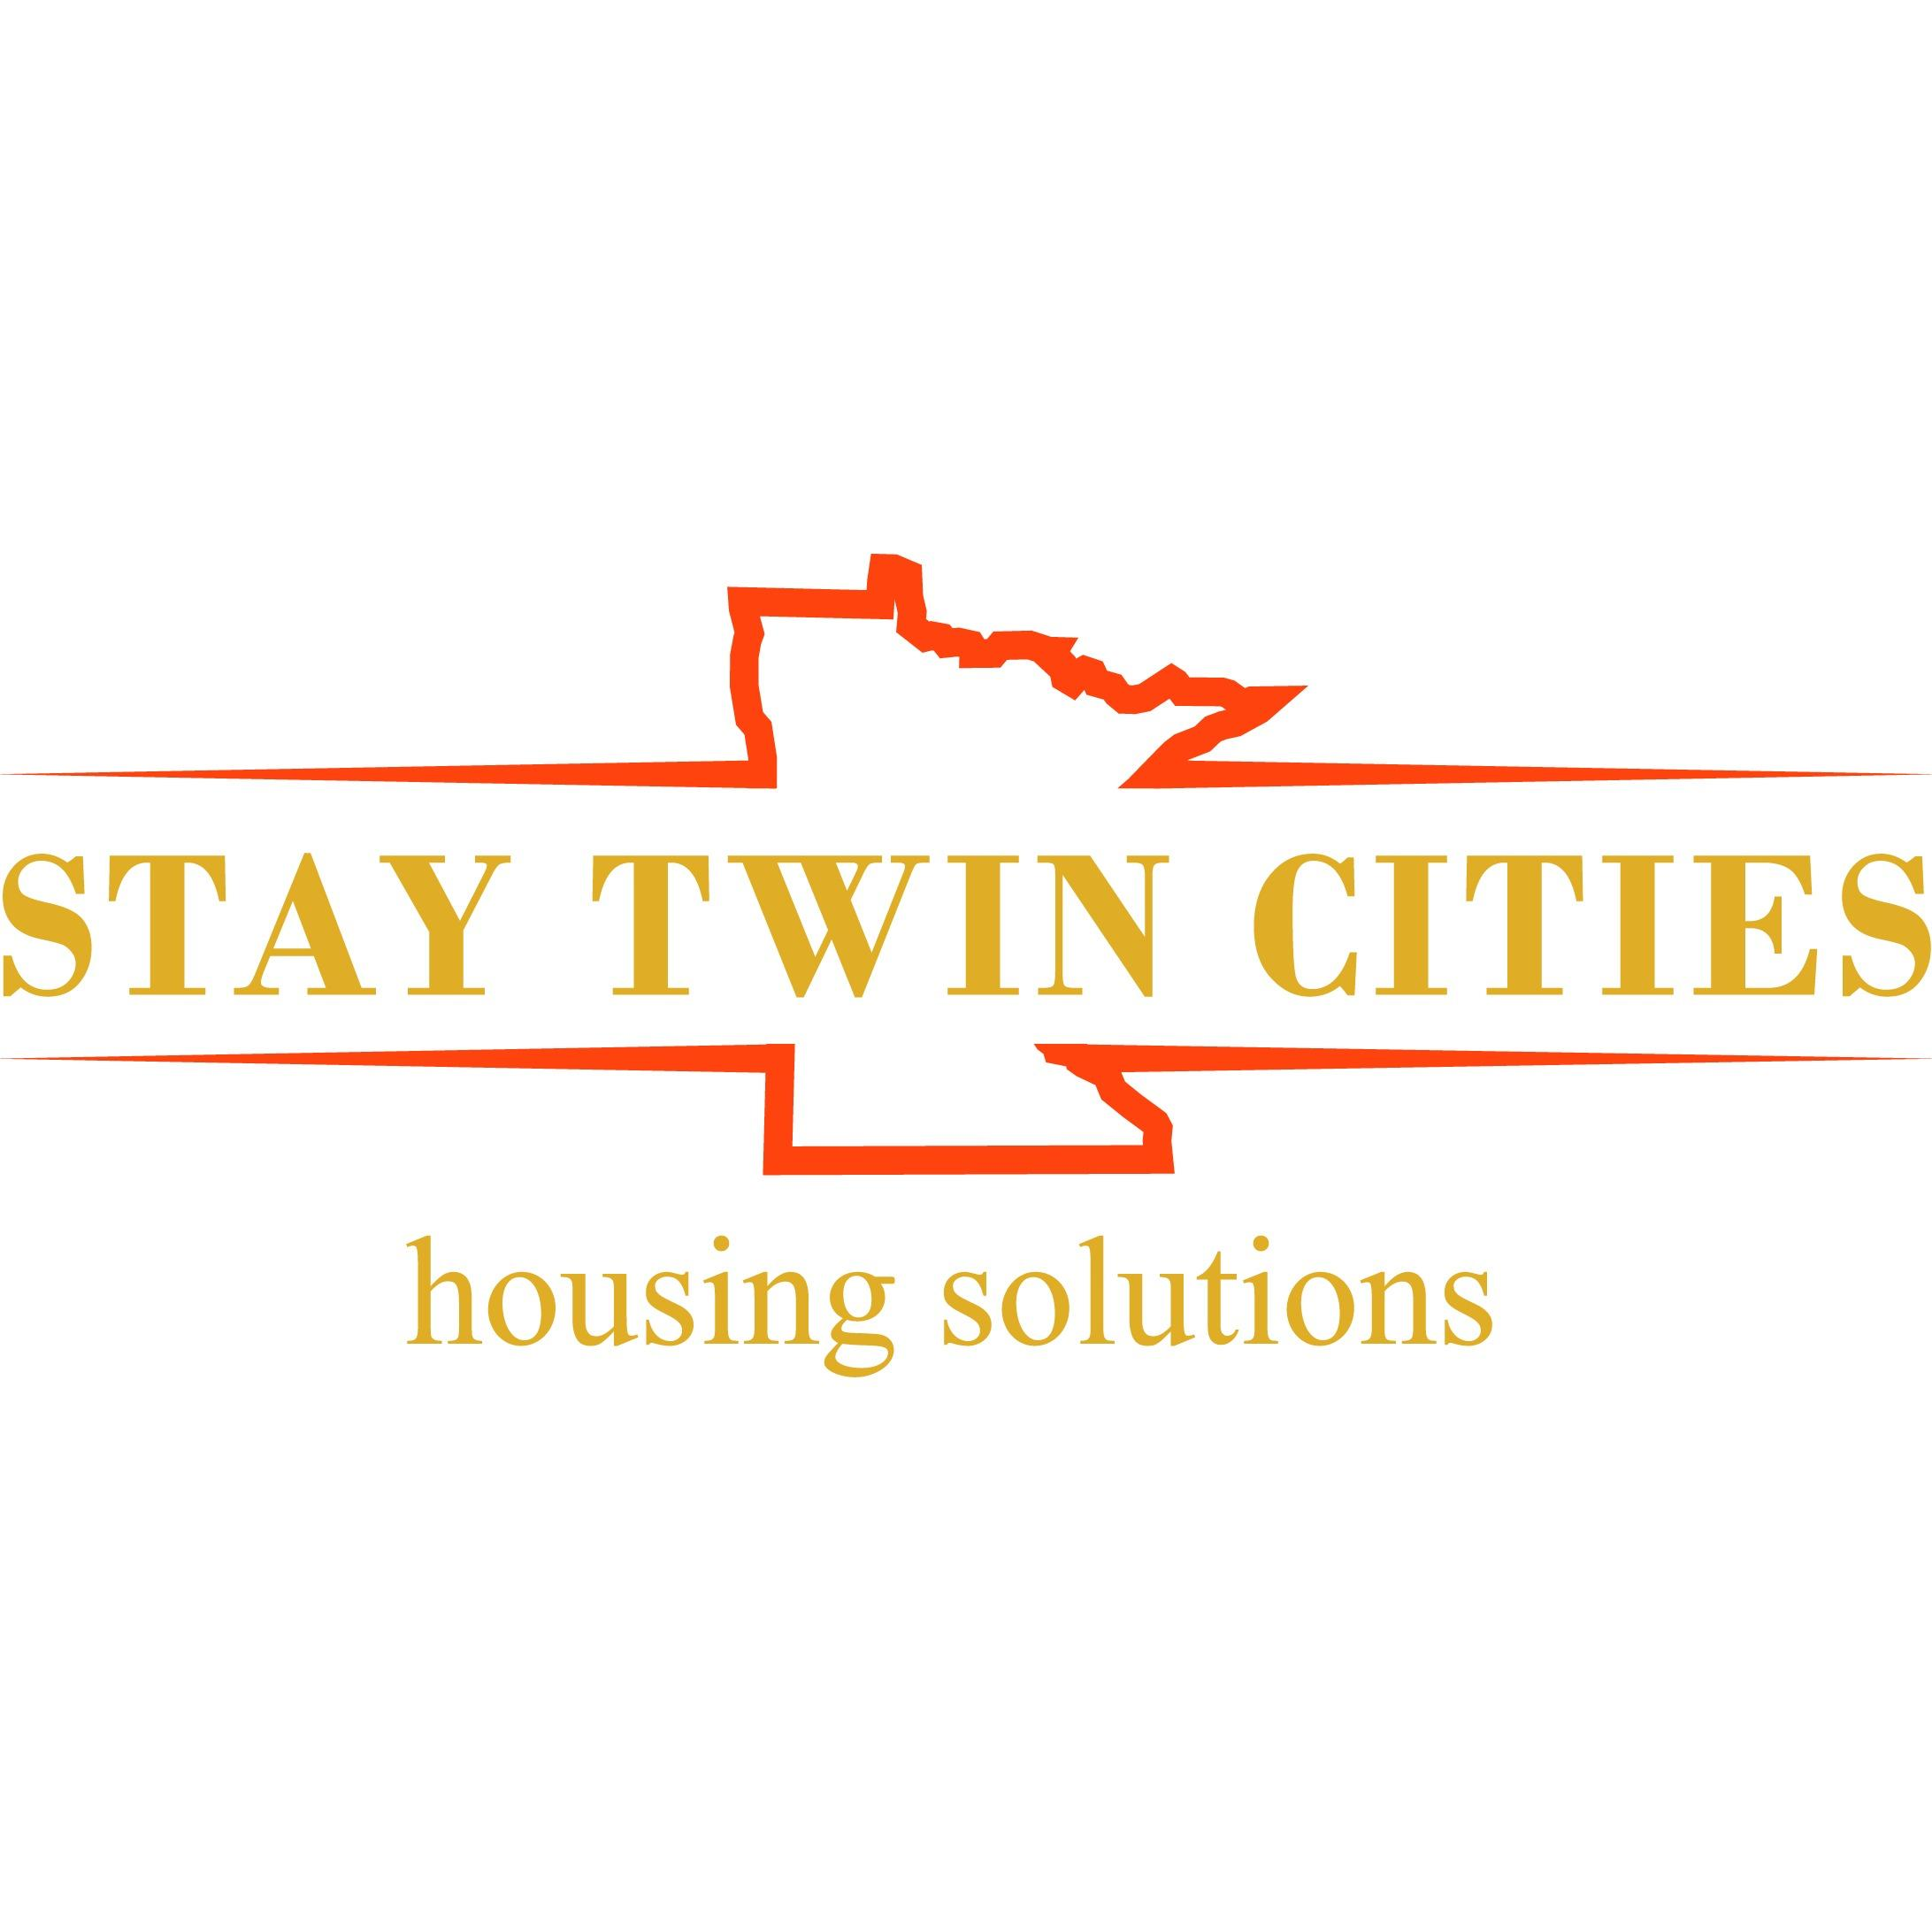 Stay Twin Cities Housing Solutions image 5